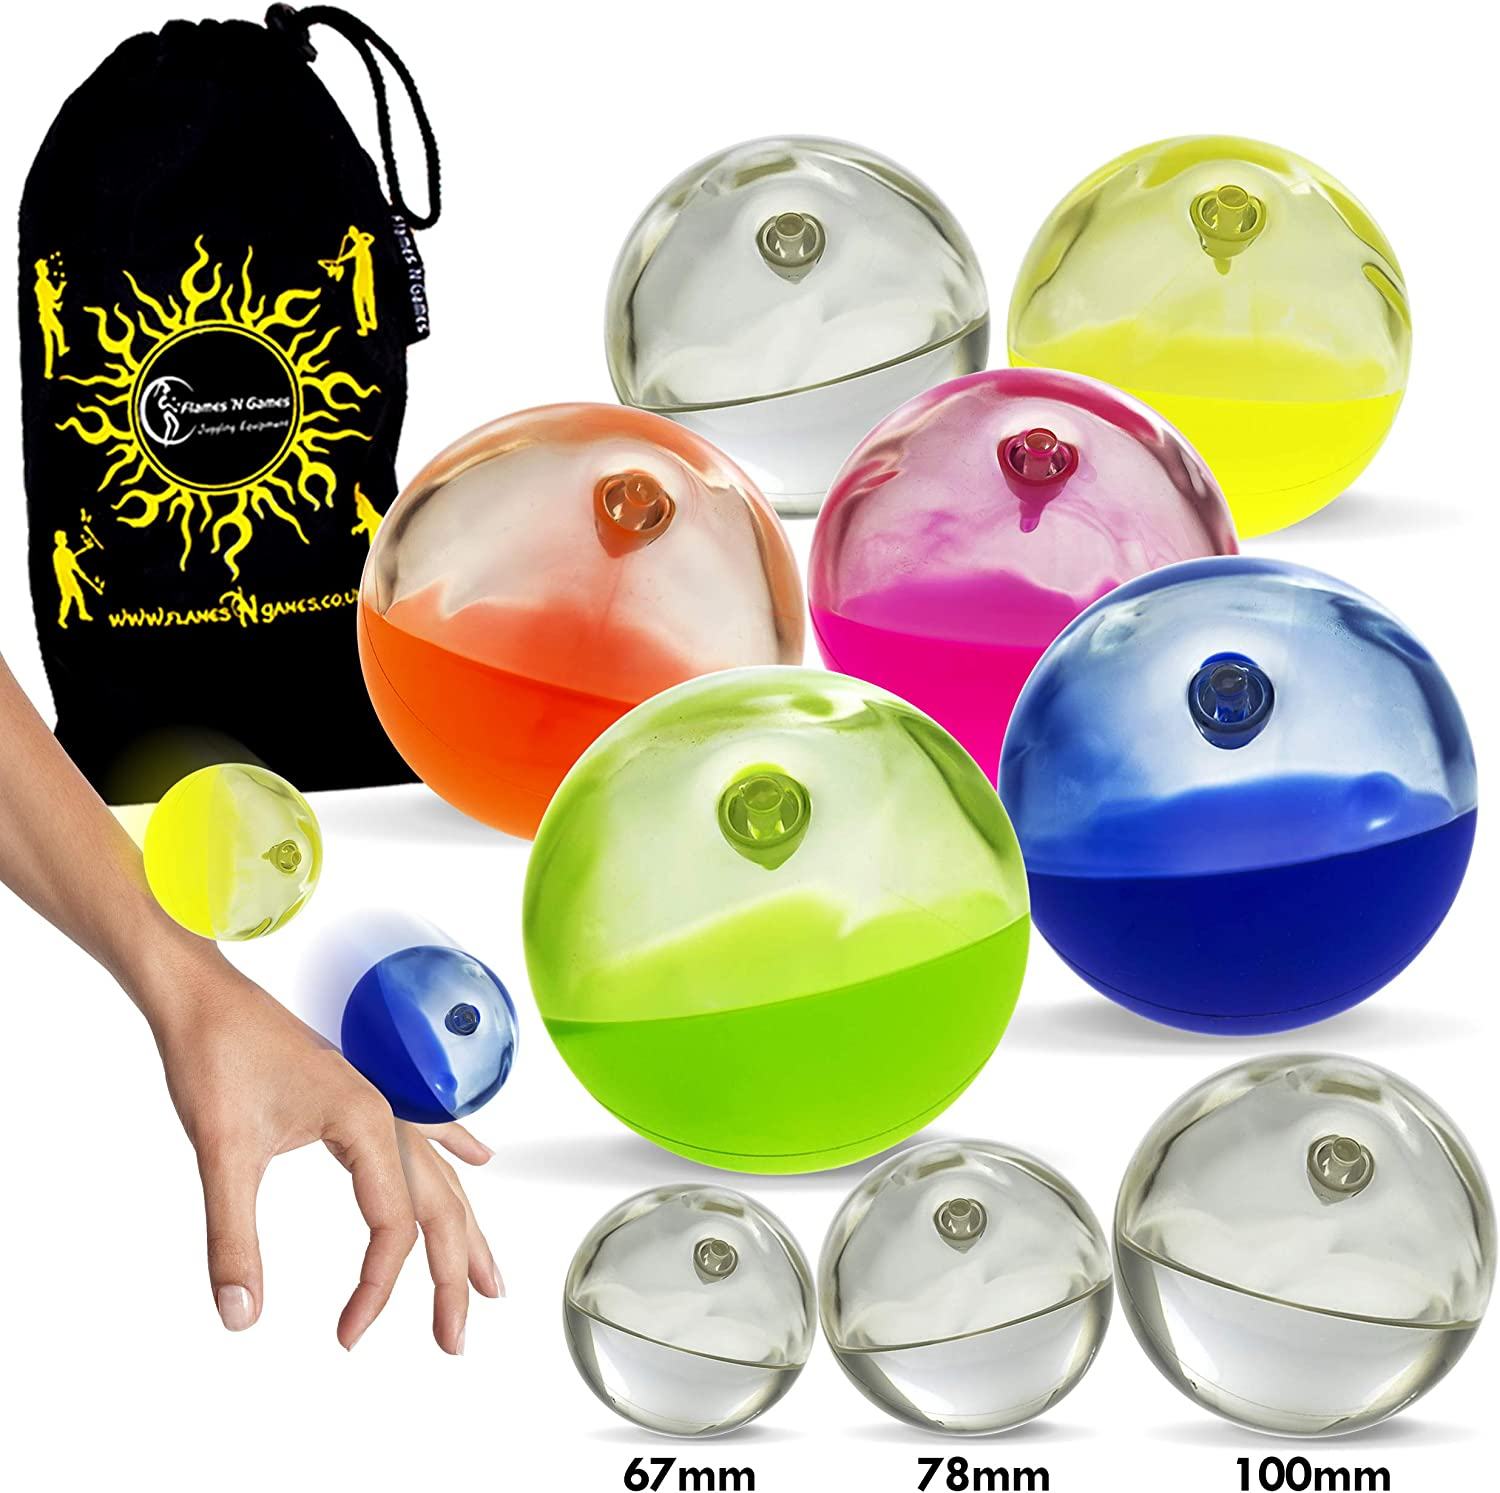 Body Rolling Manipulation and Includes Flames N Games Bag Orange, 67mm Available in 3 Sizes!Set is for 1 SIL-X Ball Play SIL-X Implosion Silicone Stage Balls for Contact Juggling